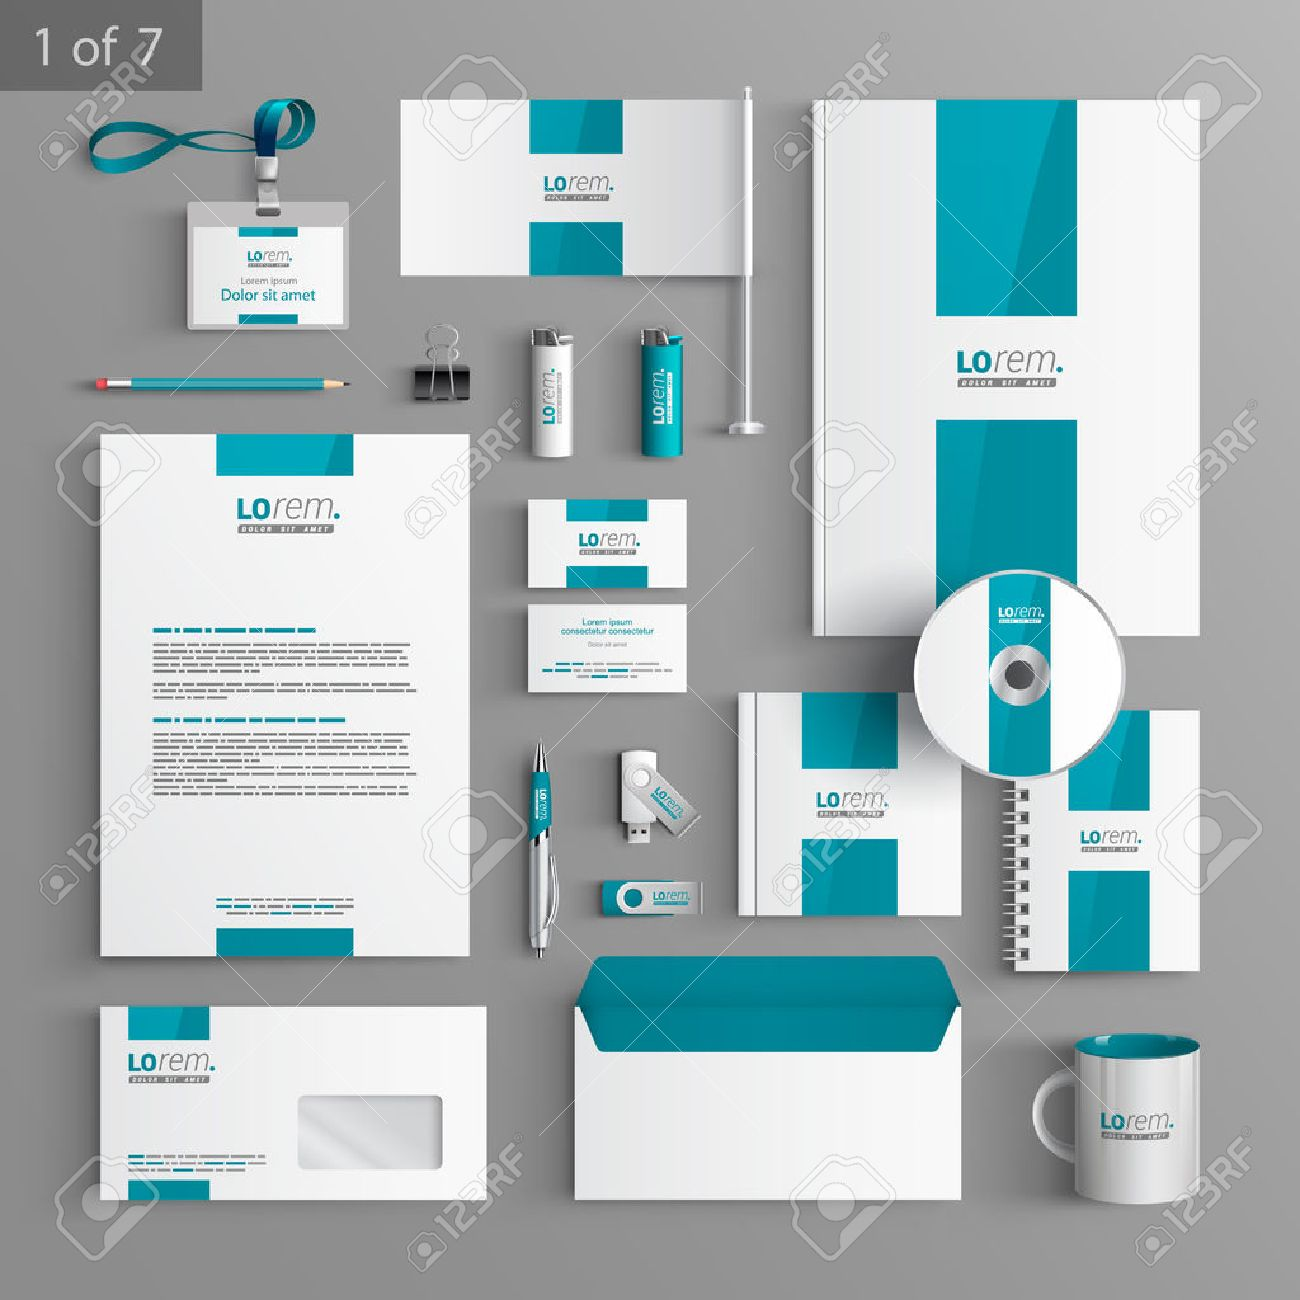 white stationery template design with blue central element